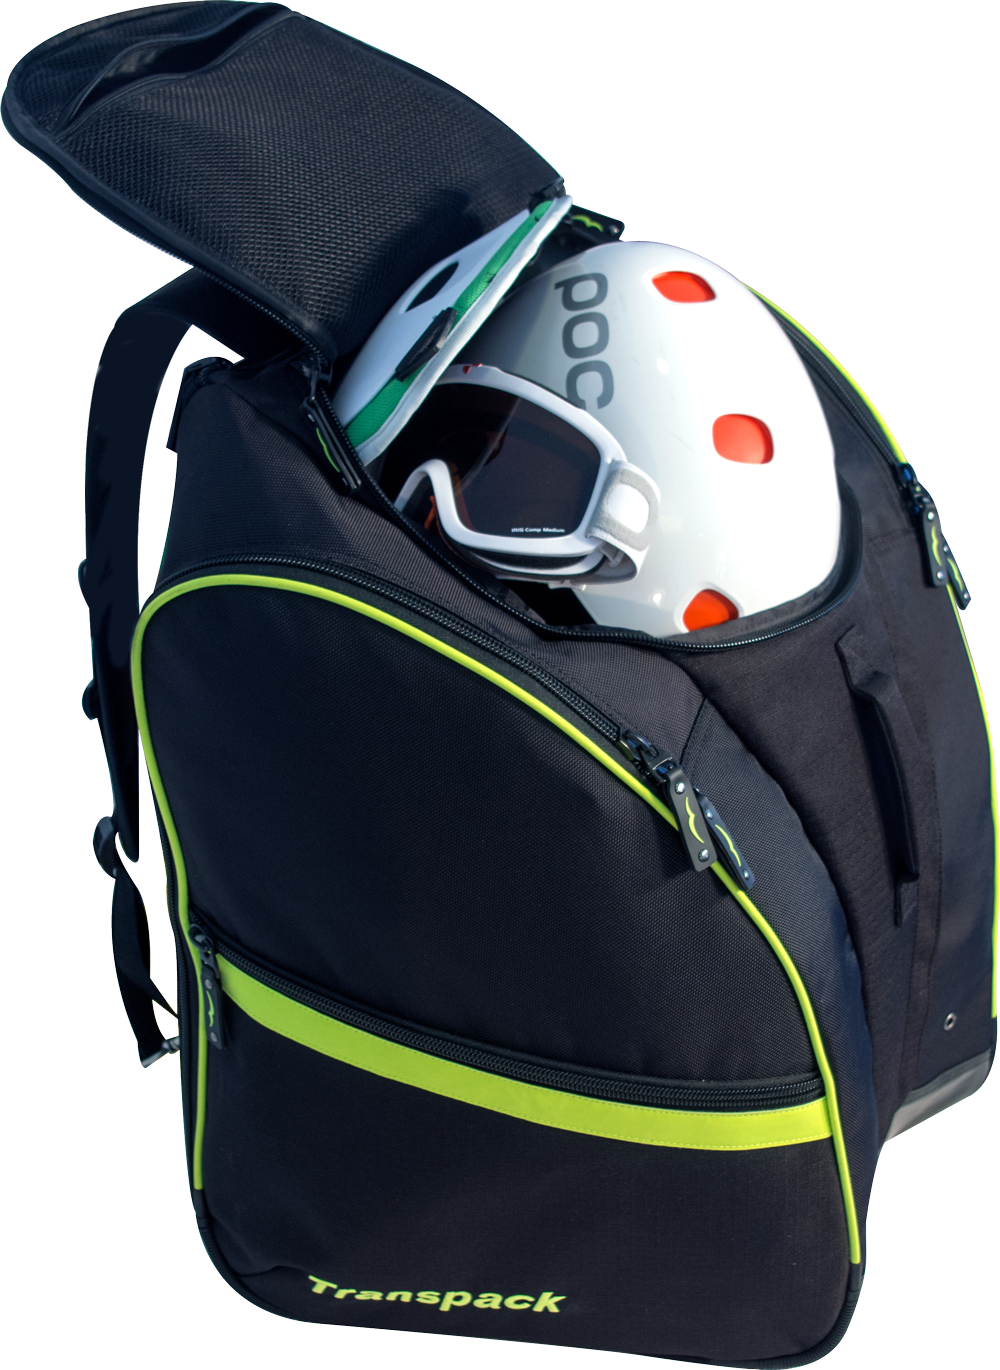 Inner compartment fits your helmet, goggles, and all your other protective gear